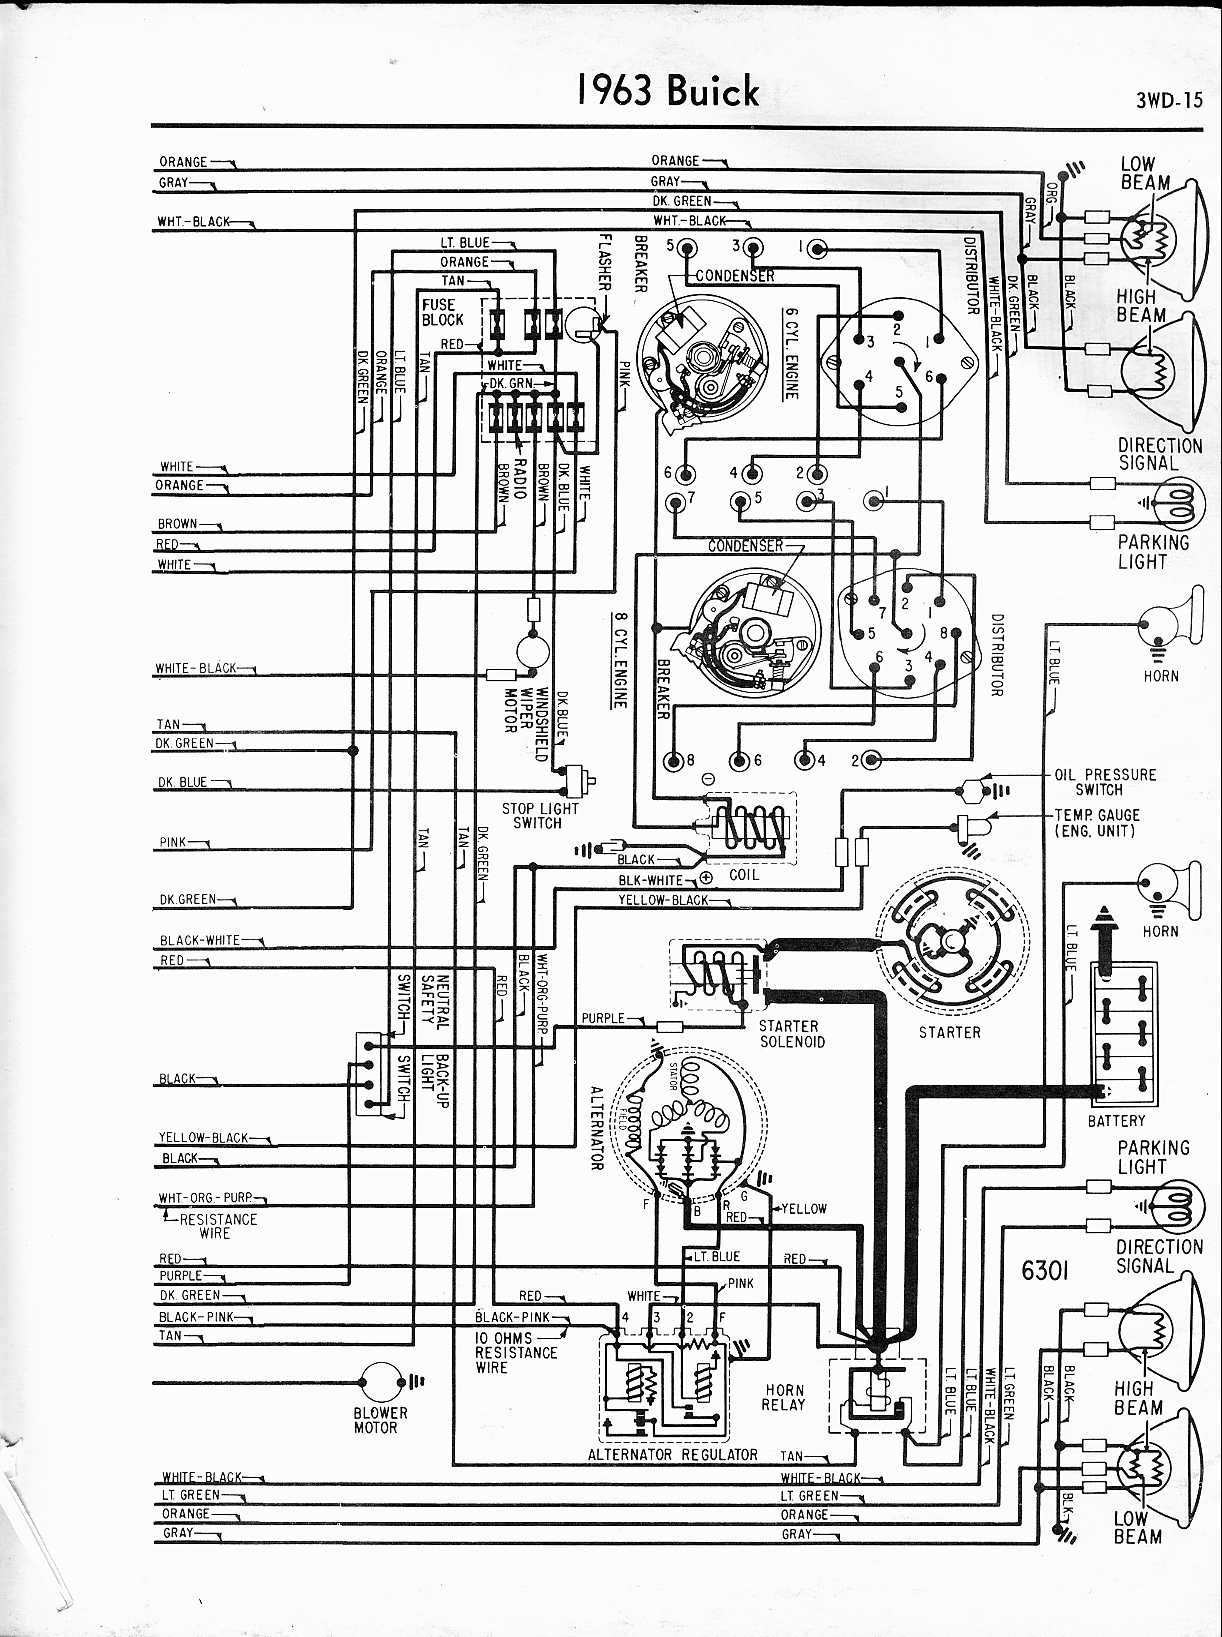 Wonderful 1972 Buick Skylark Engine Wiring Diagram Contemporary ...